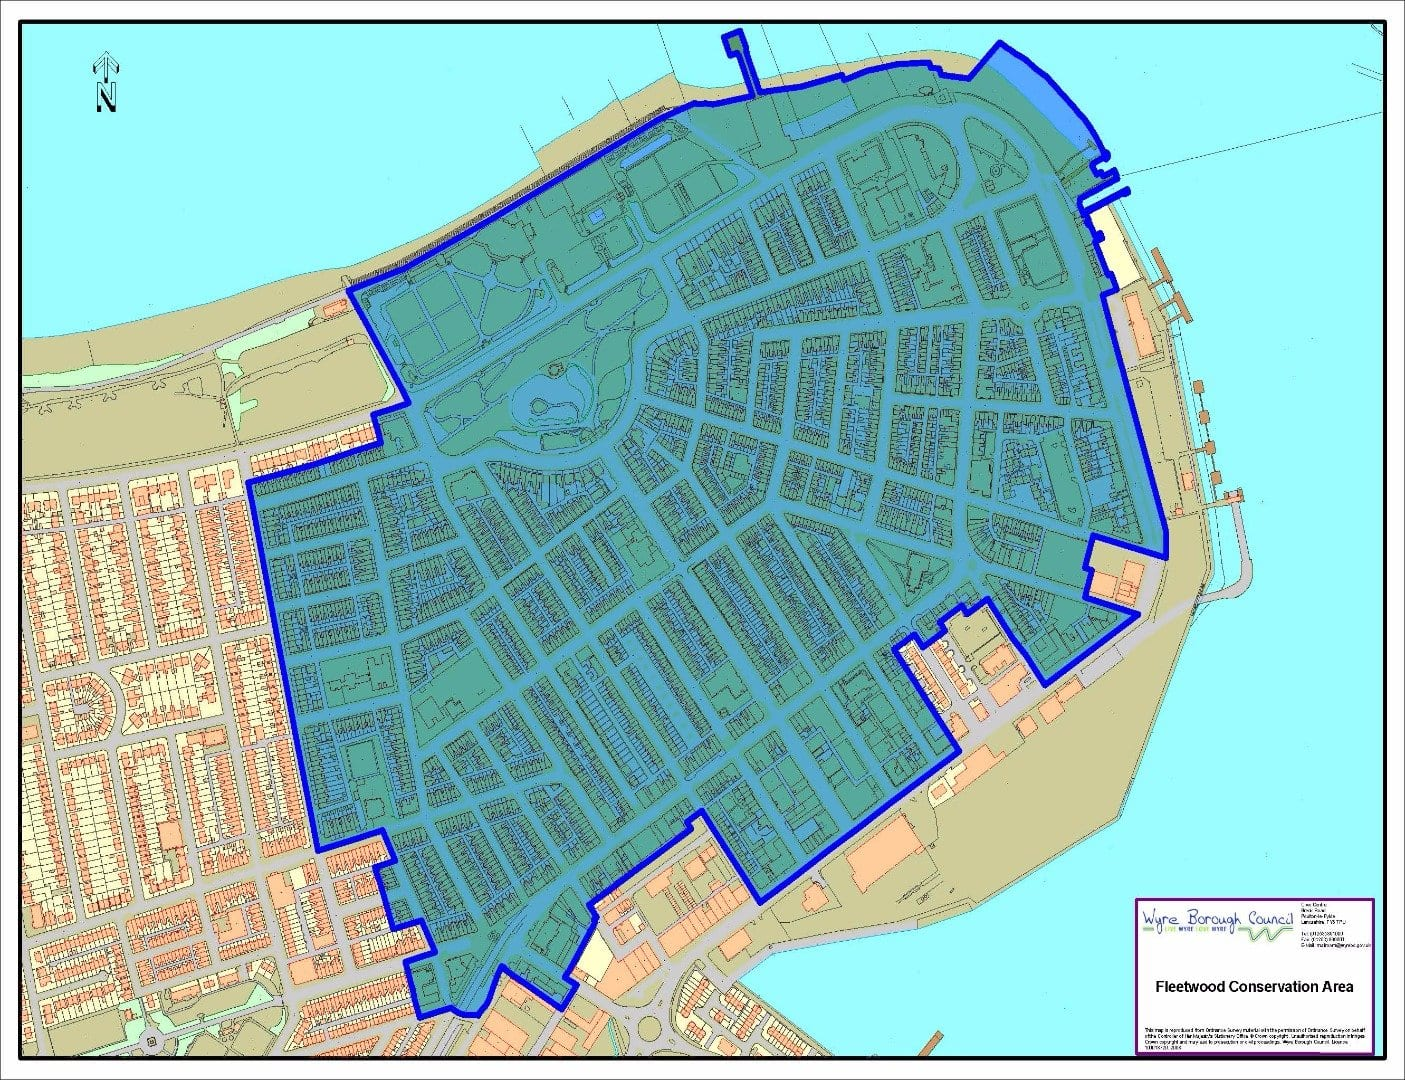 Map of Fleetwood Conservation area